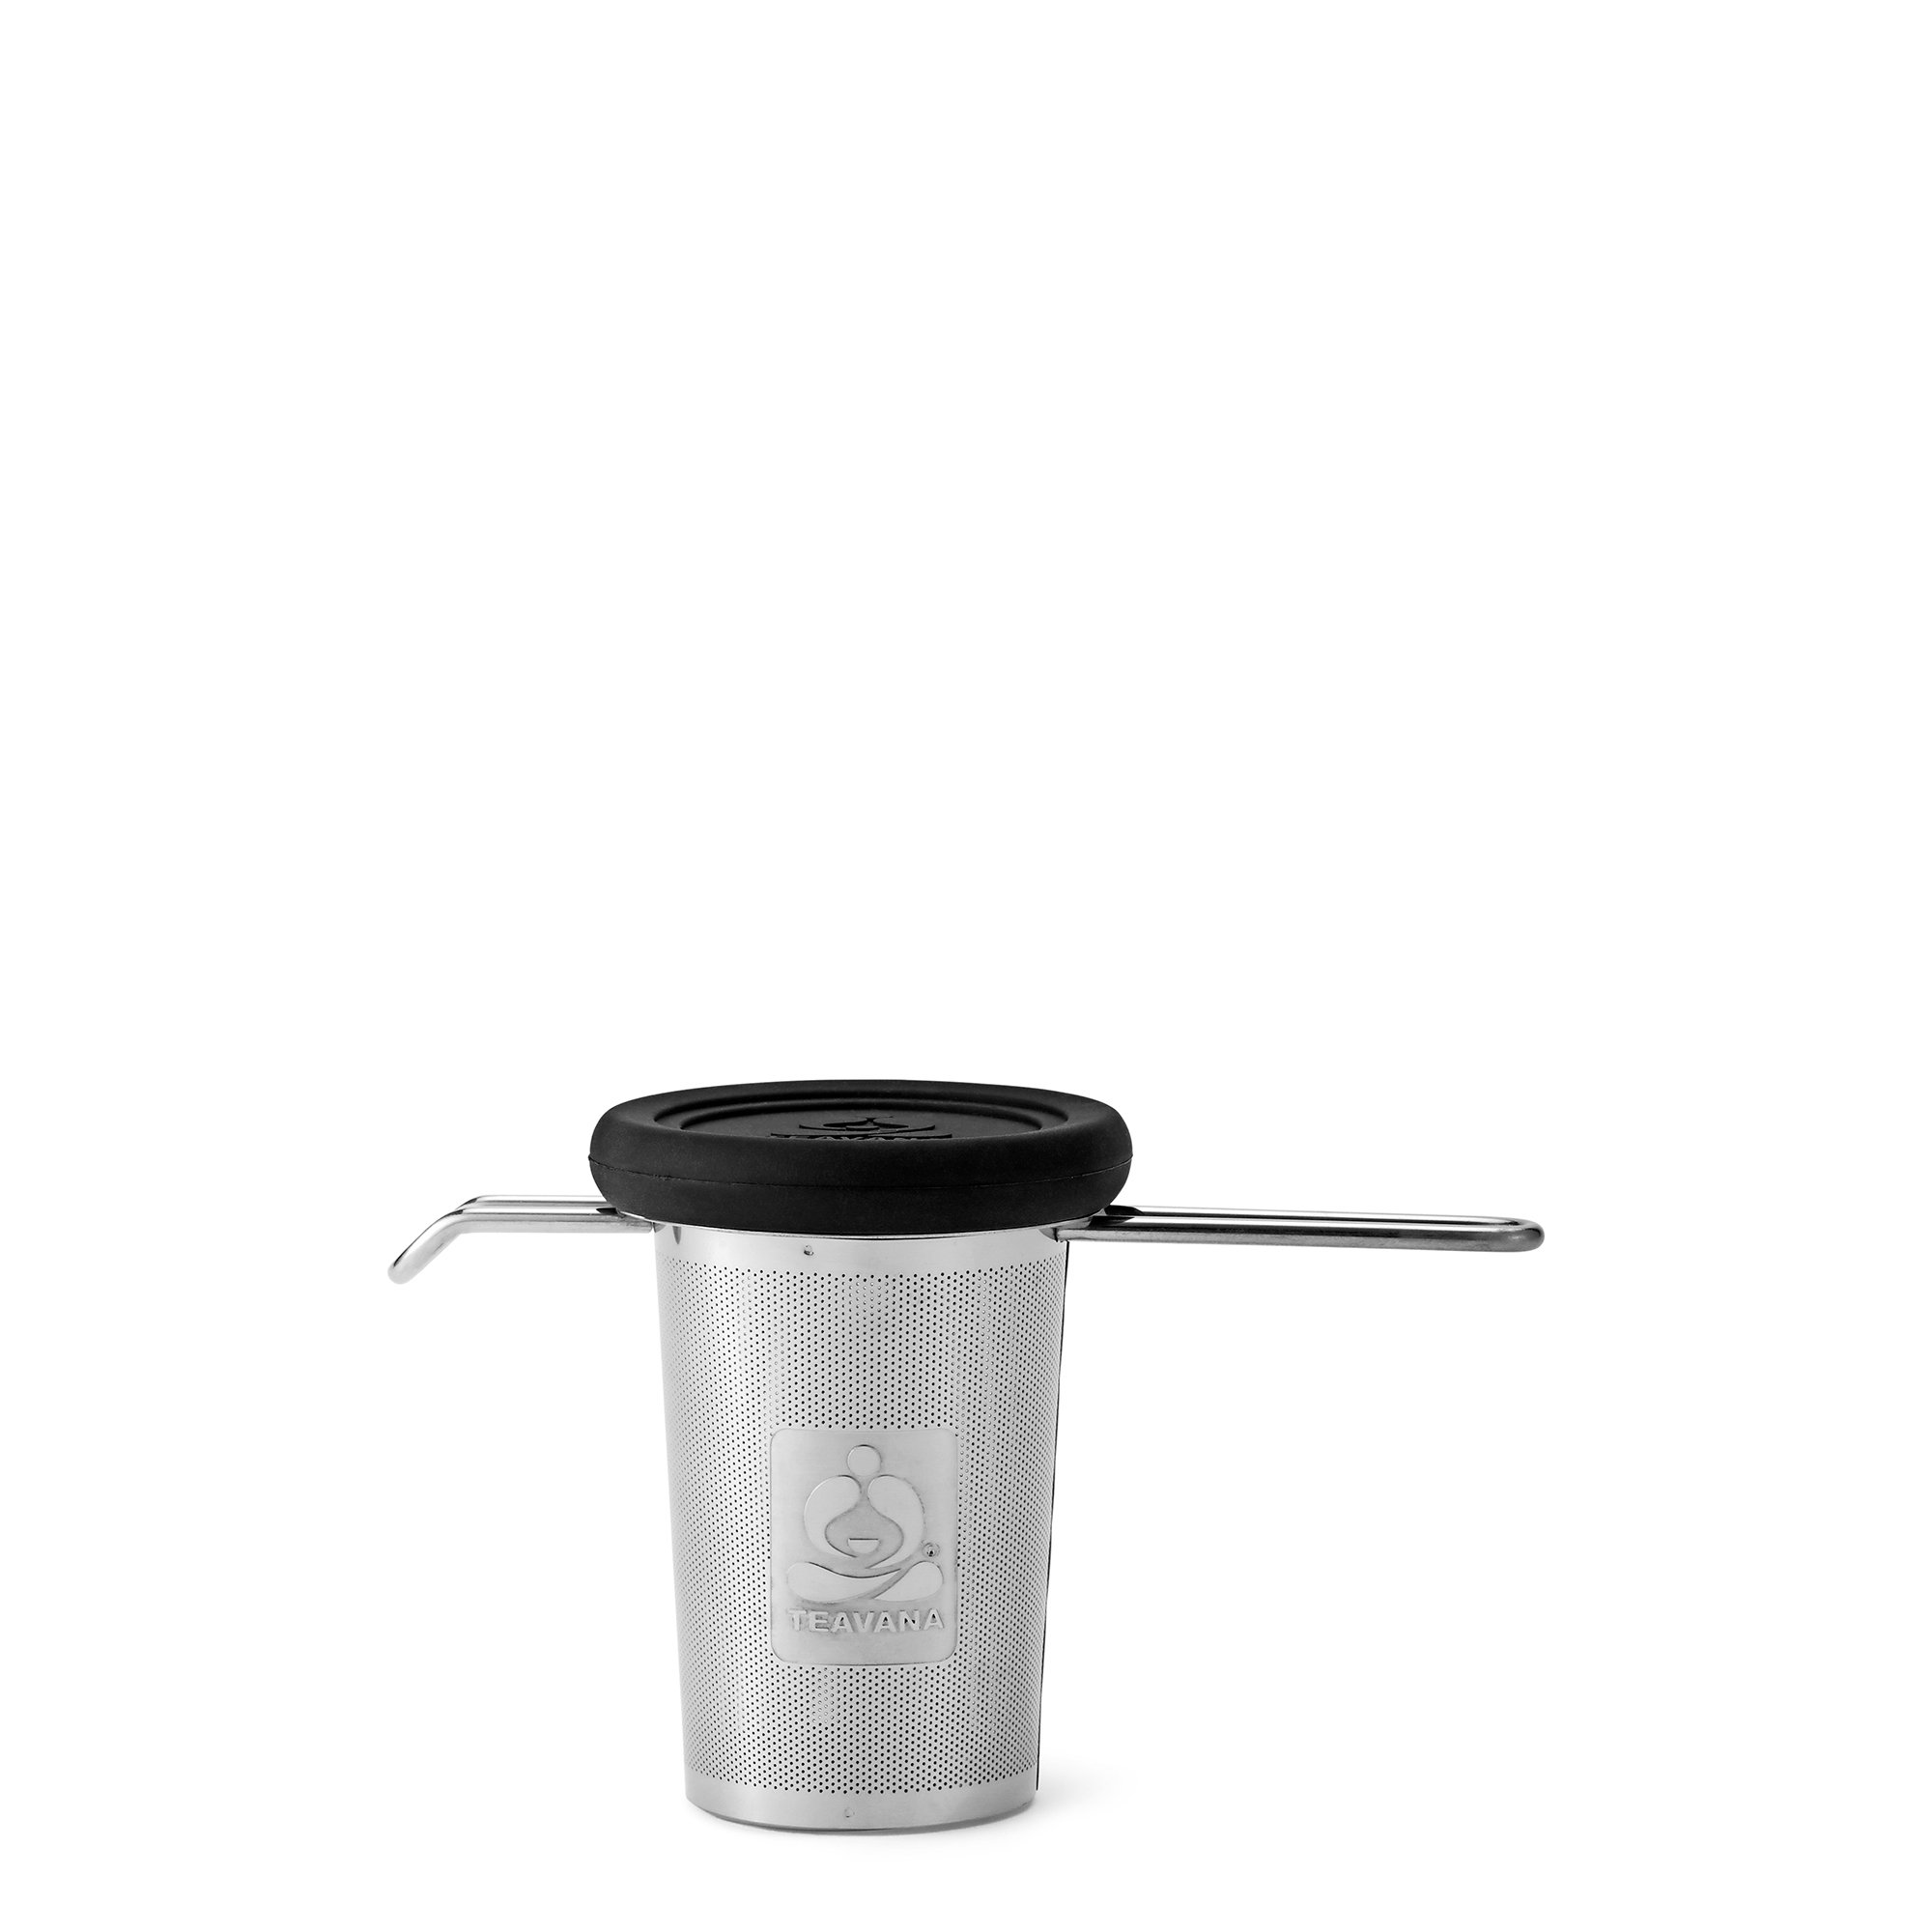 Teavana (Stainless Steel Single Serving Tea Strainer by Teavana)